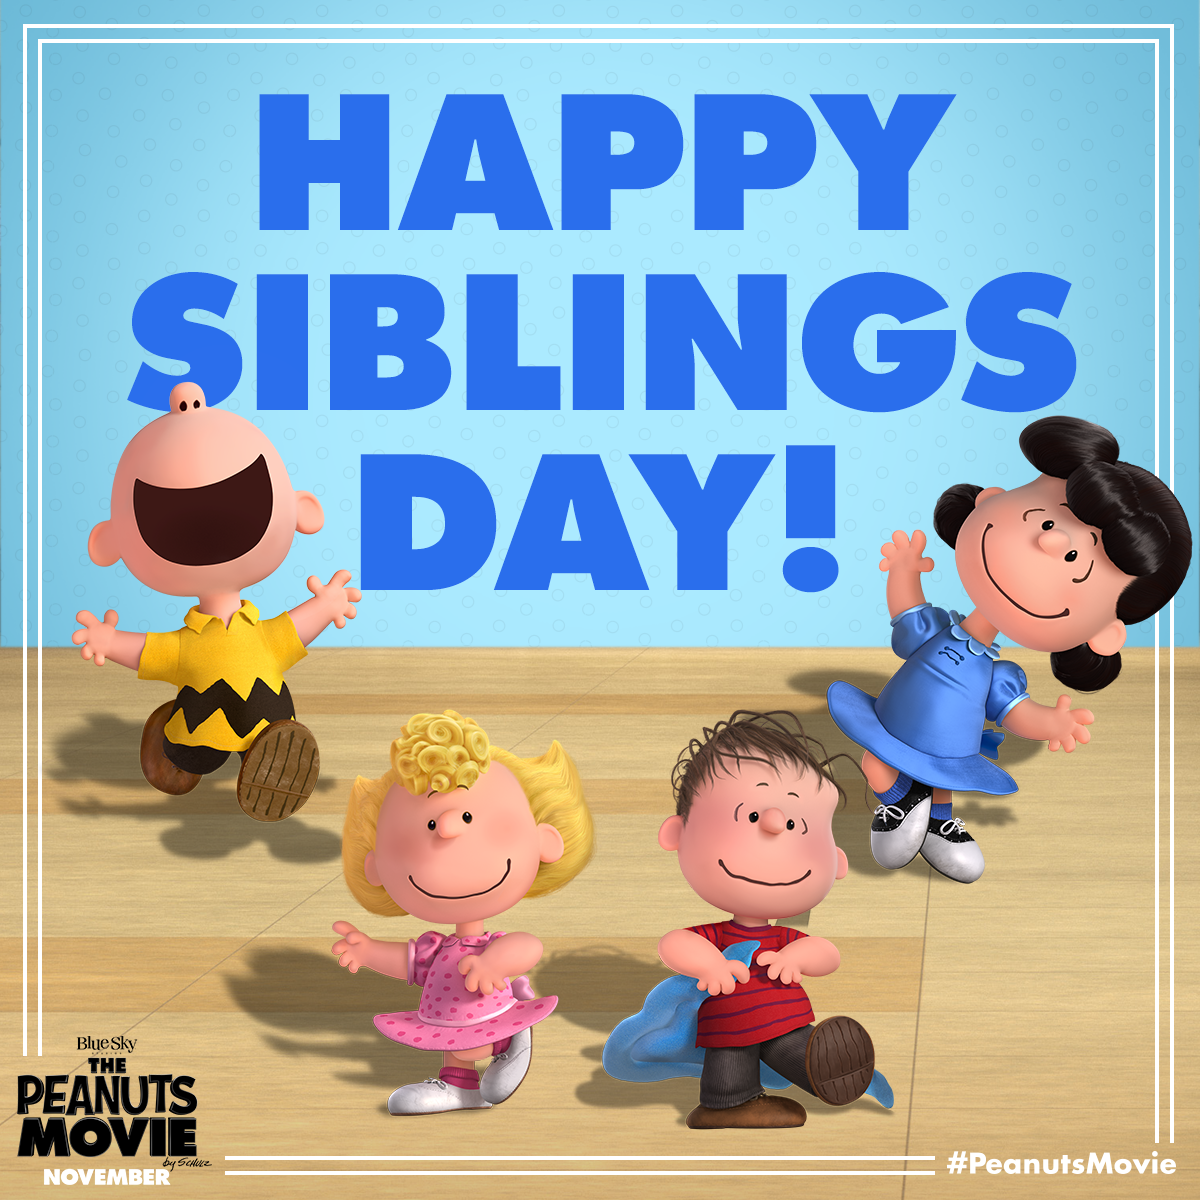 Happy Sister And Brothers Day: Oh Brother! Happy National Siblings Day From The Peanuts